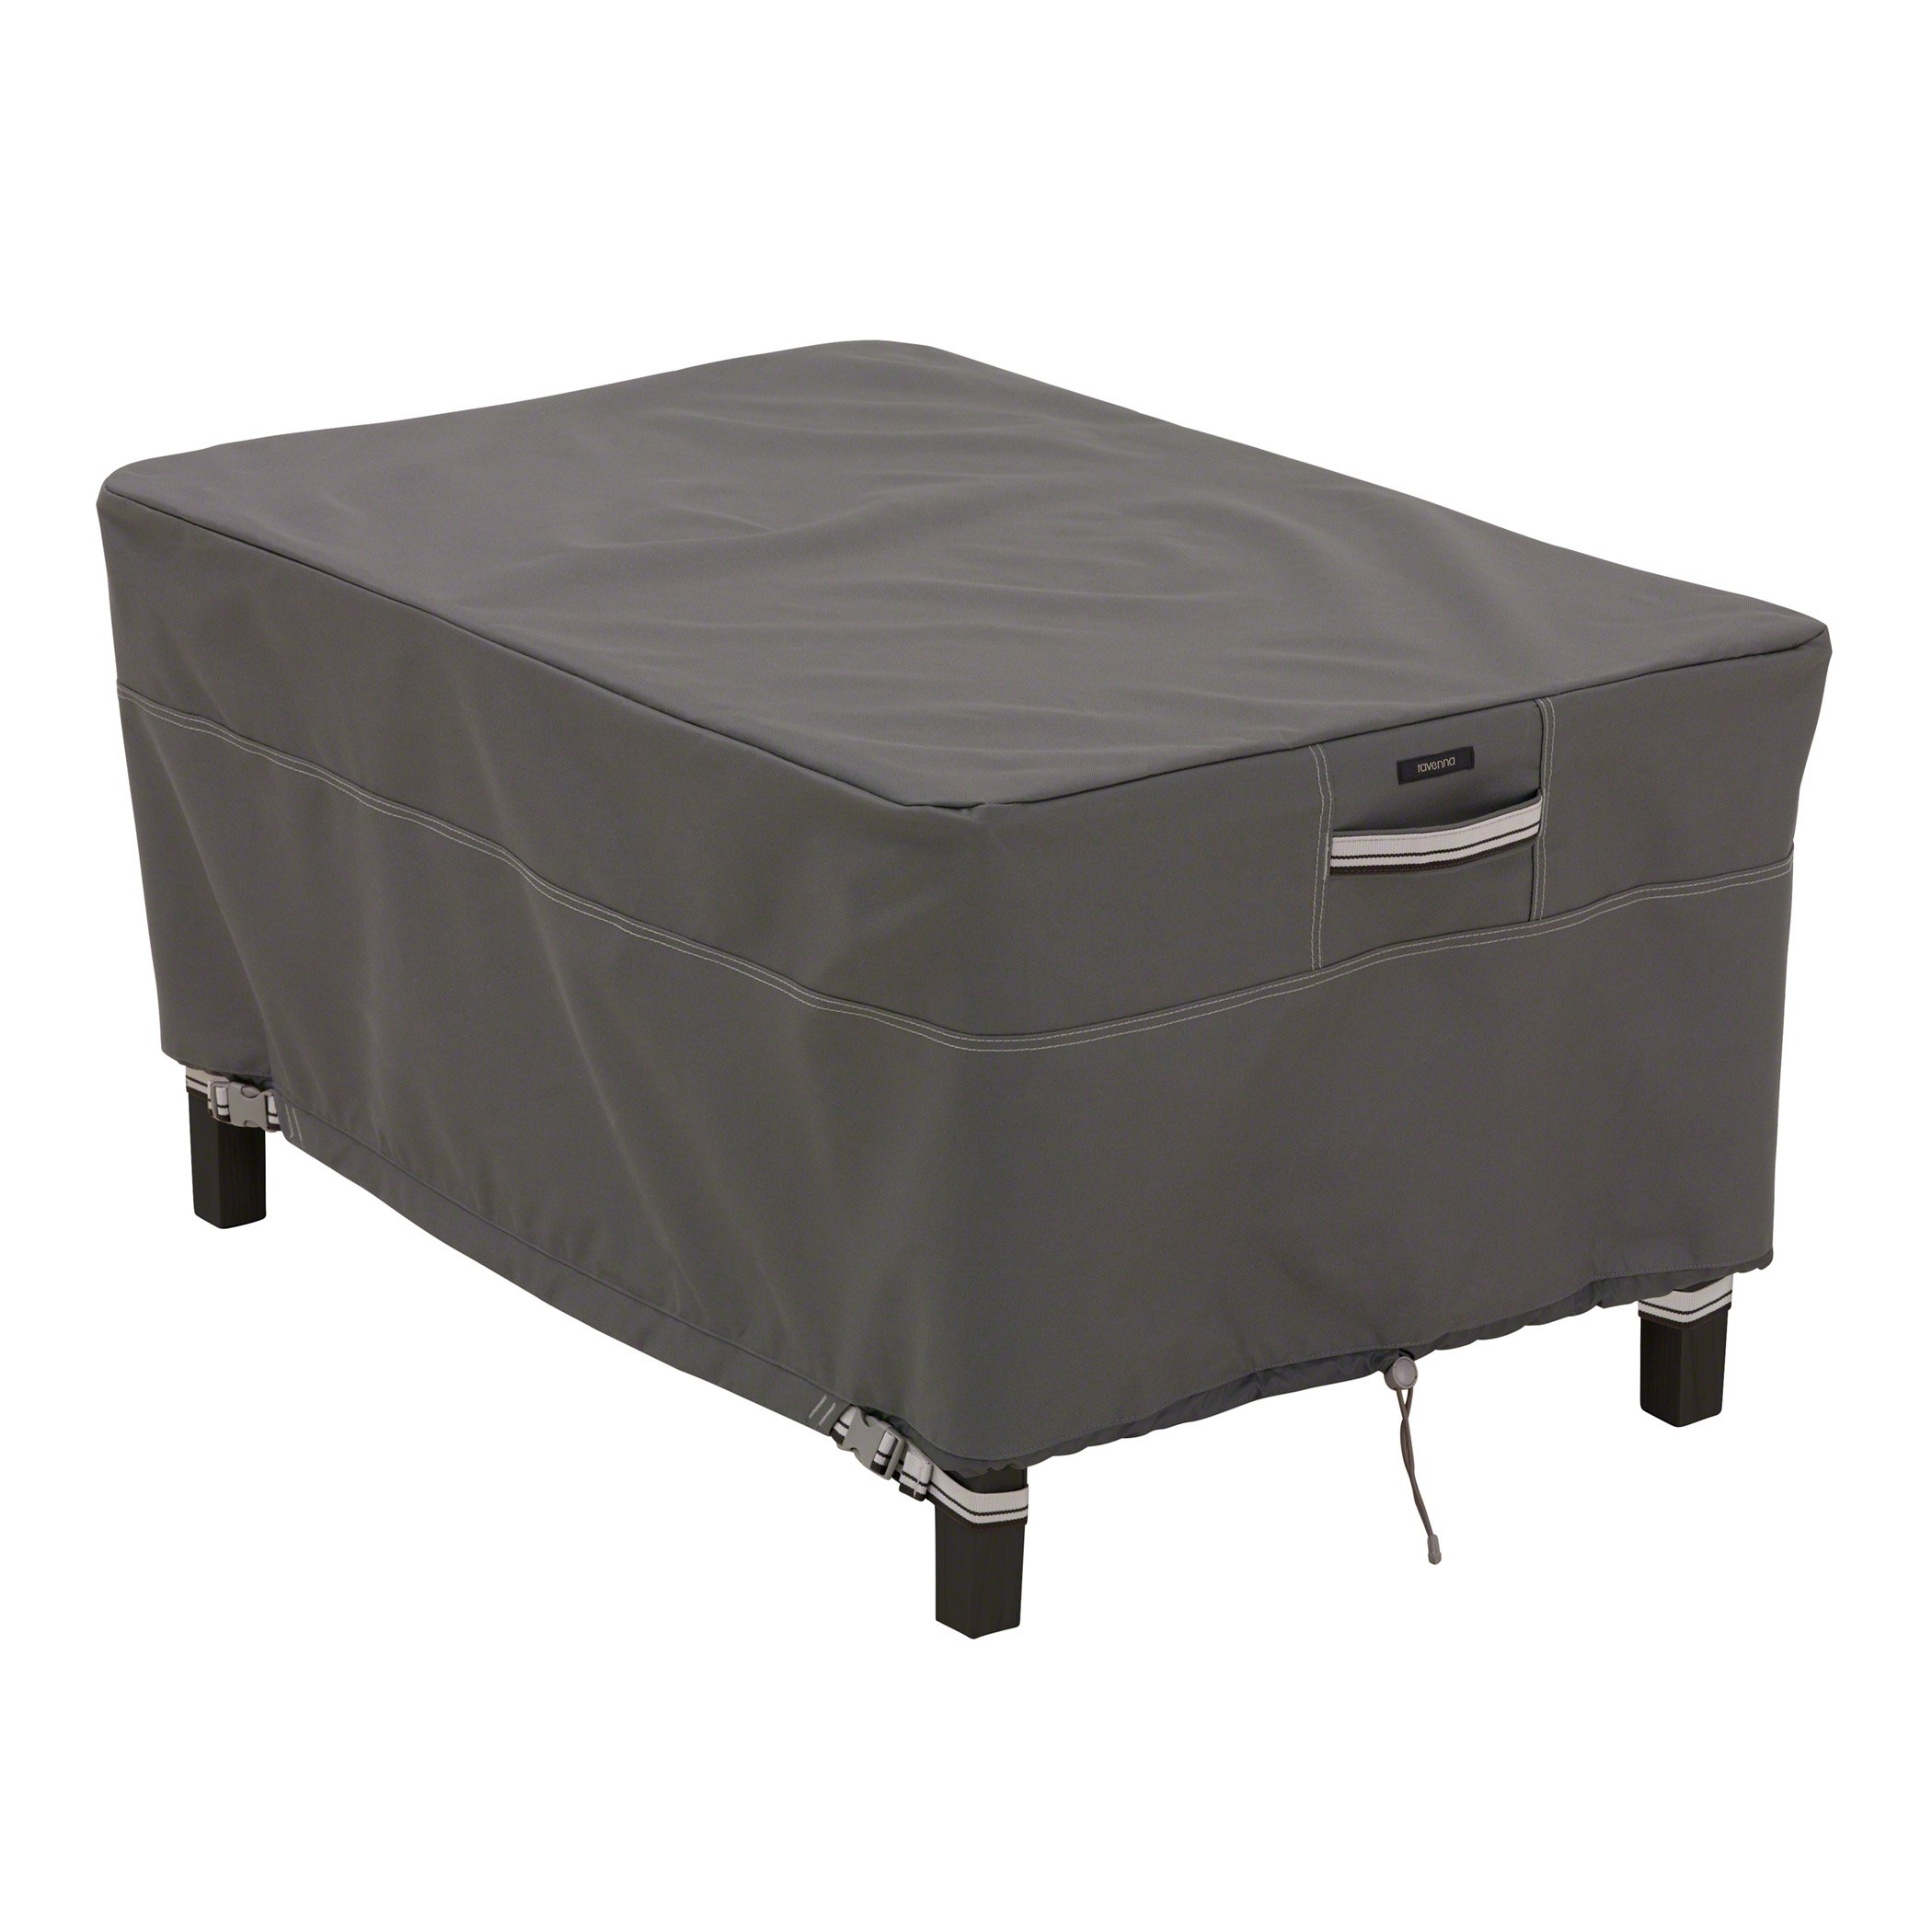 Classic Accessories Ravenna Rectangular Patio Ottoman/Table Cover - Premium Outdoor Furniture Cover with Durable and Water Resistant Fabric, Small (55-166-025101-EC)